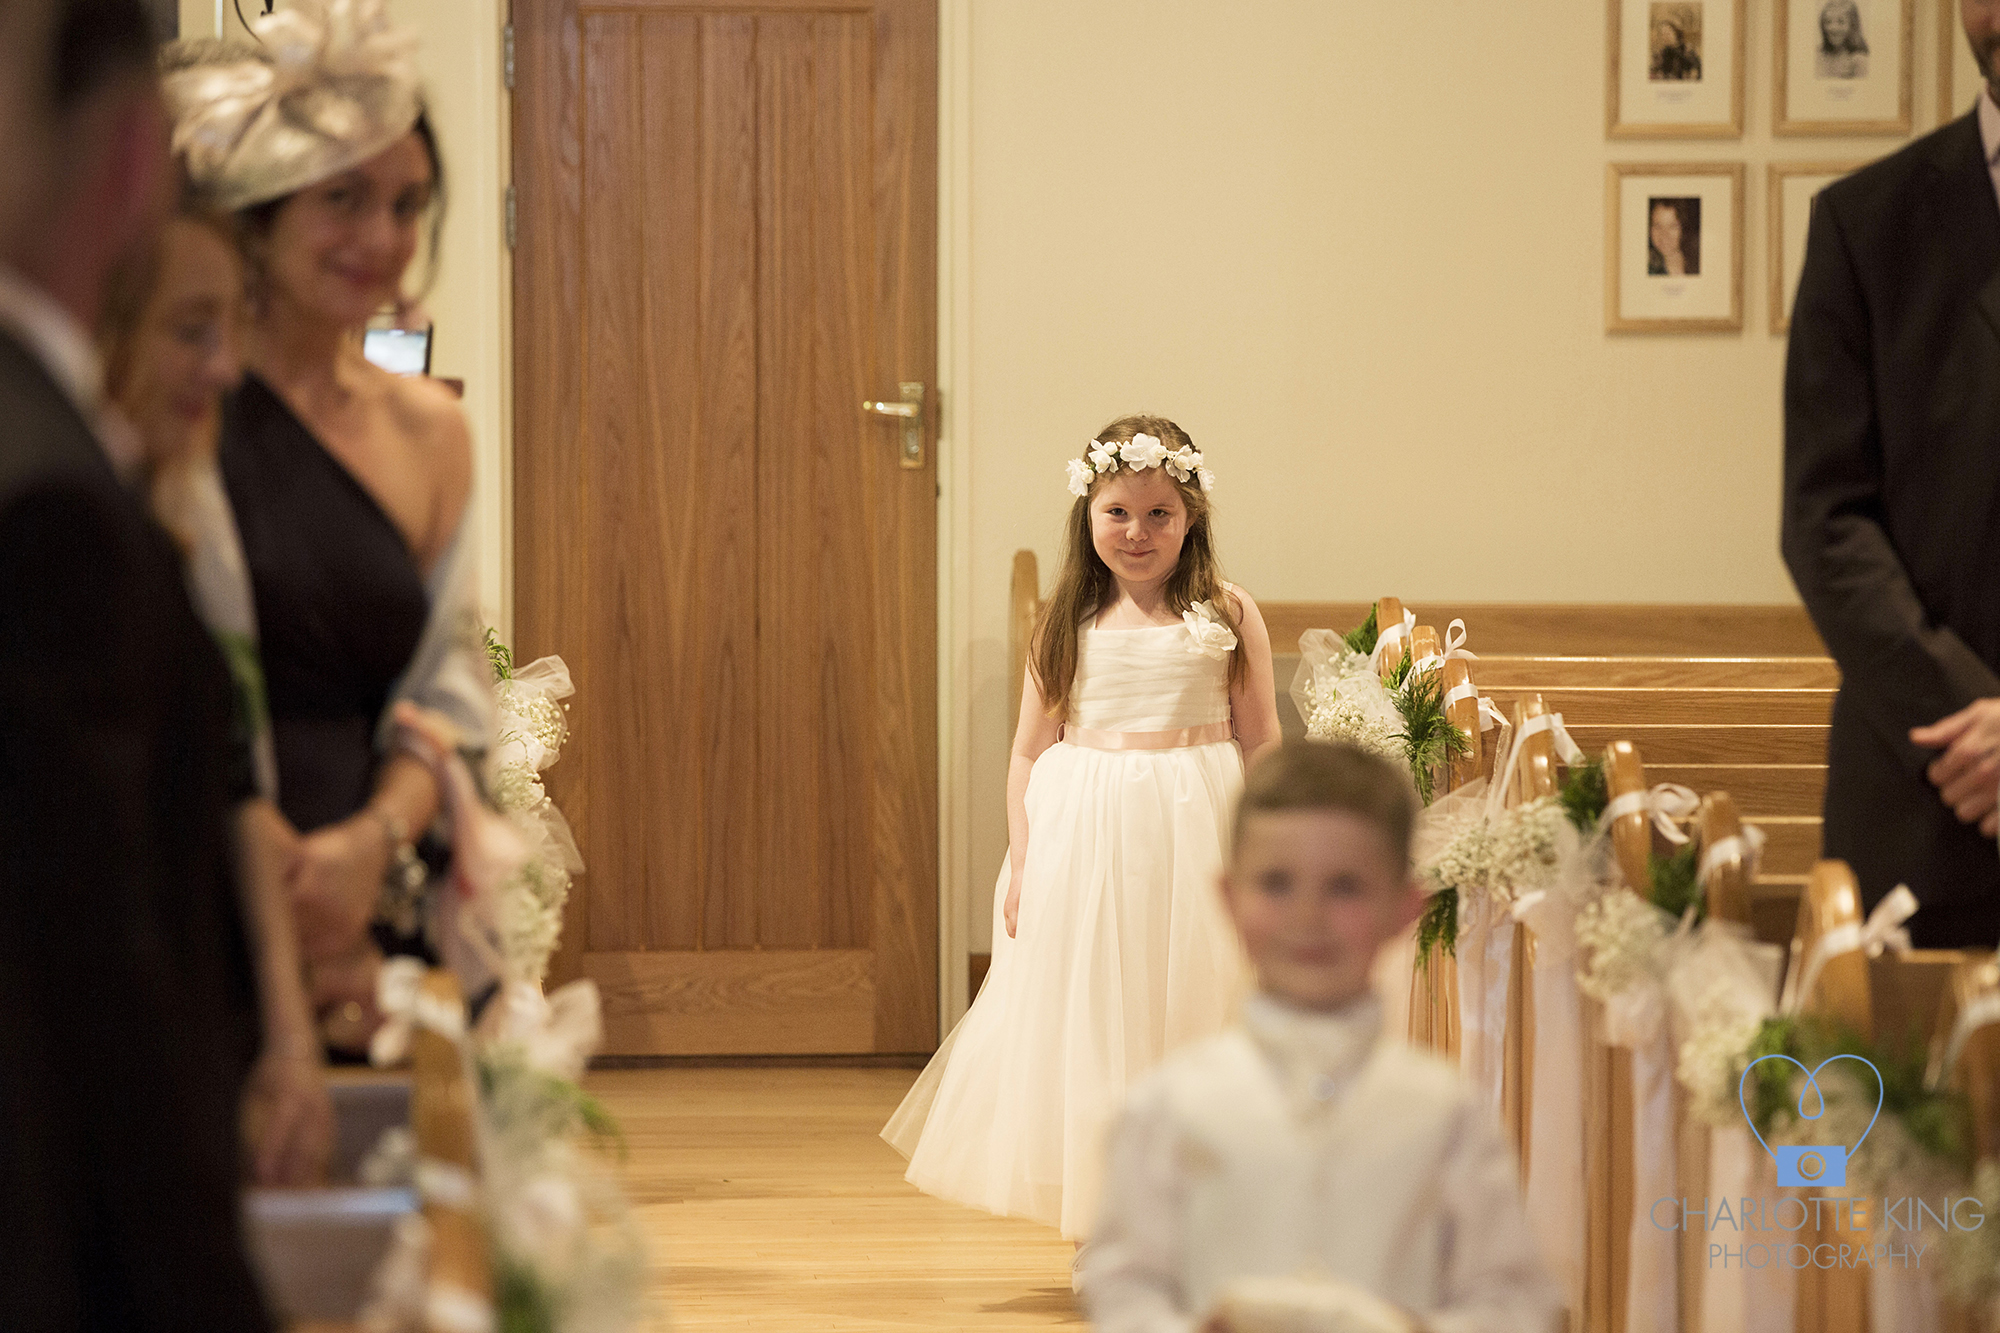 Woldingham-school-wedding-charlotte-king-photography (37)